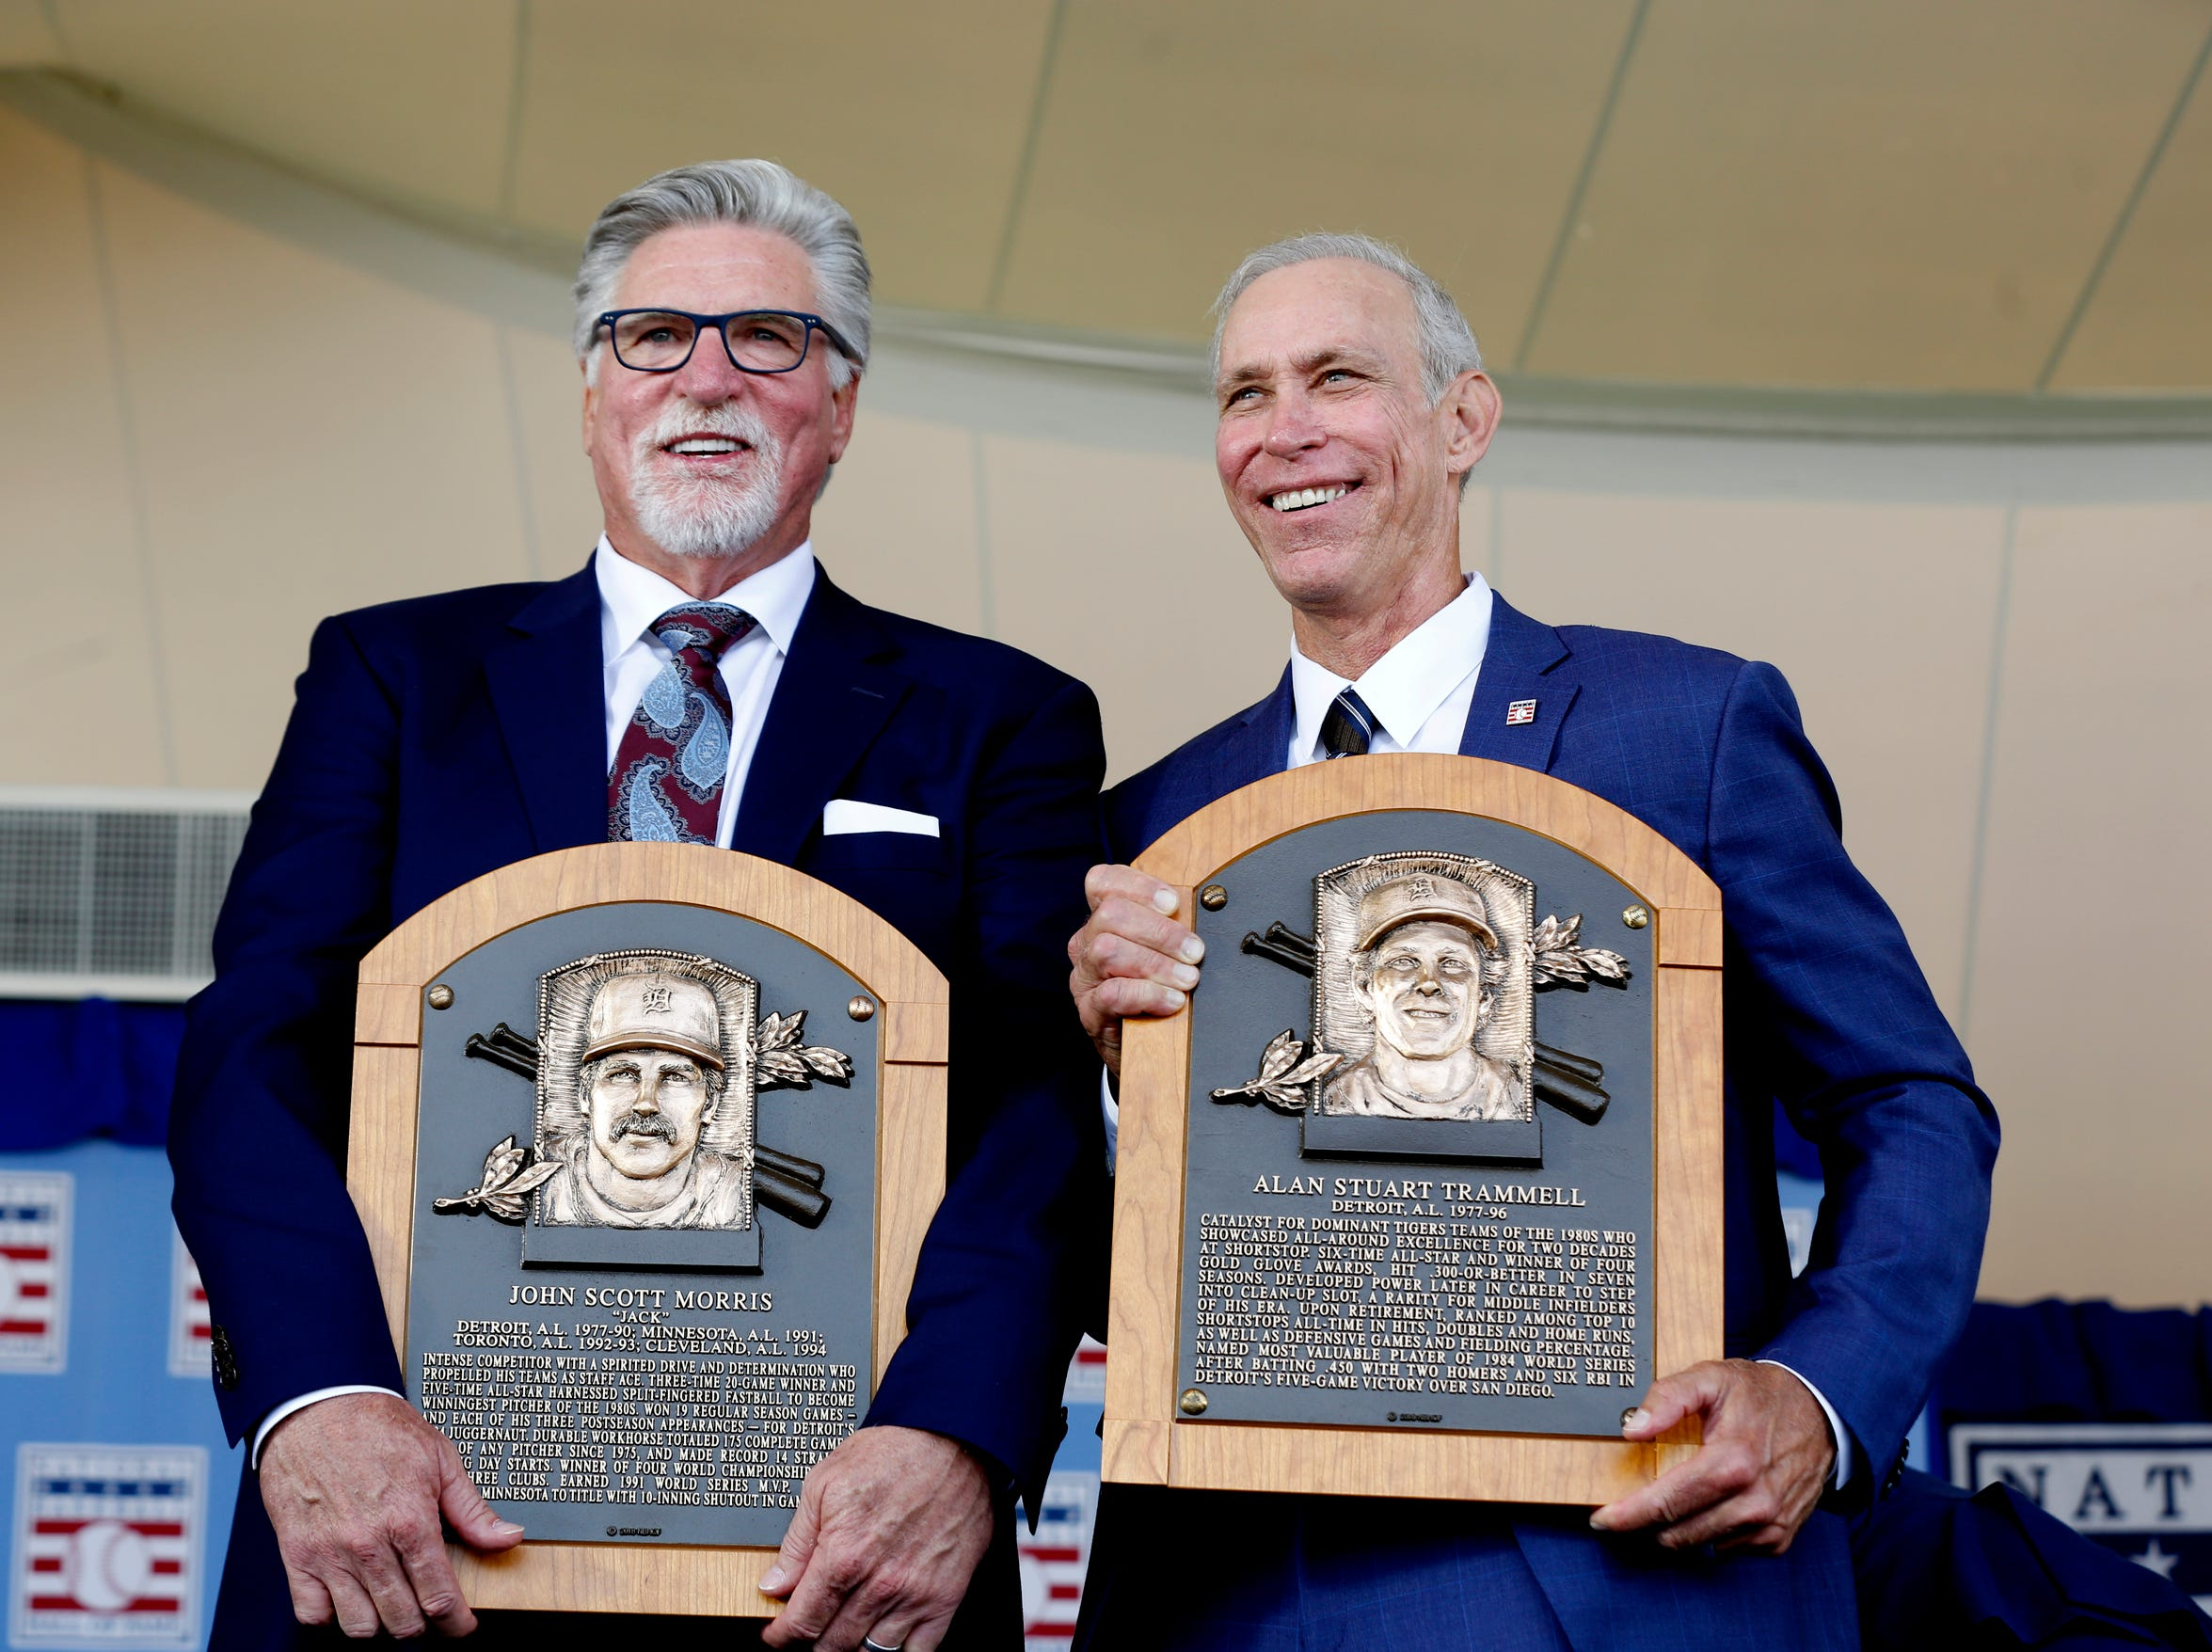 Tigers greats Jack Morris and Alan Trammell with their Baseball Hall of Fame plaques that they were presented with at the Clark Sports Center during the National Baseball Hall of Fame induction ceremony in Cooperstown, N.Y., on Sunday, July 29, 2018.